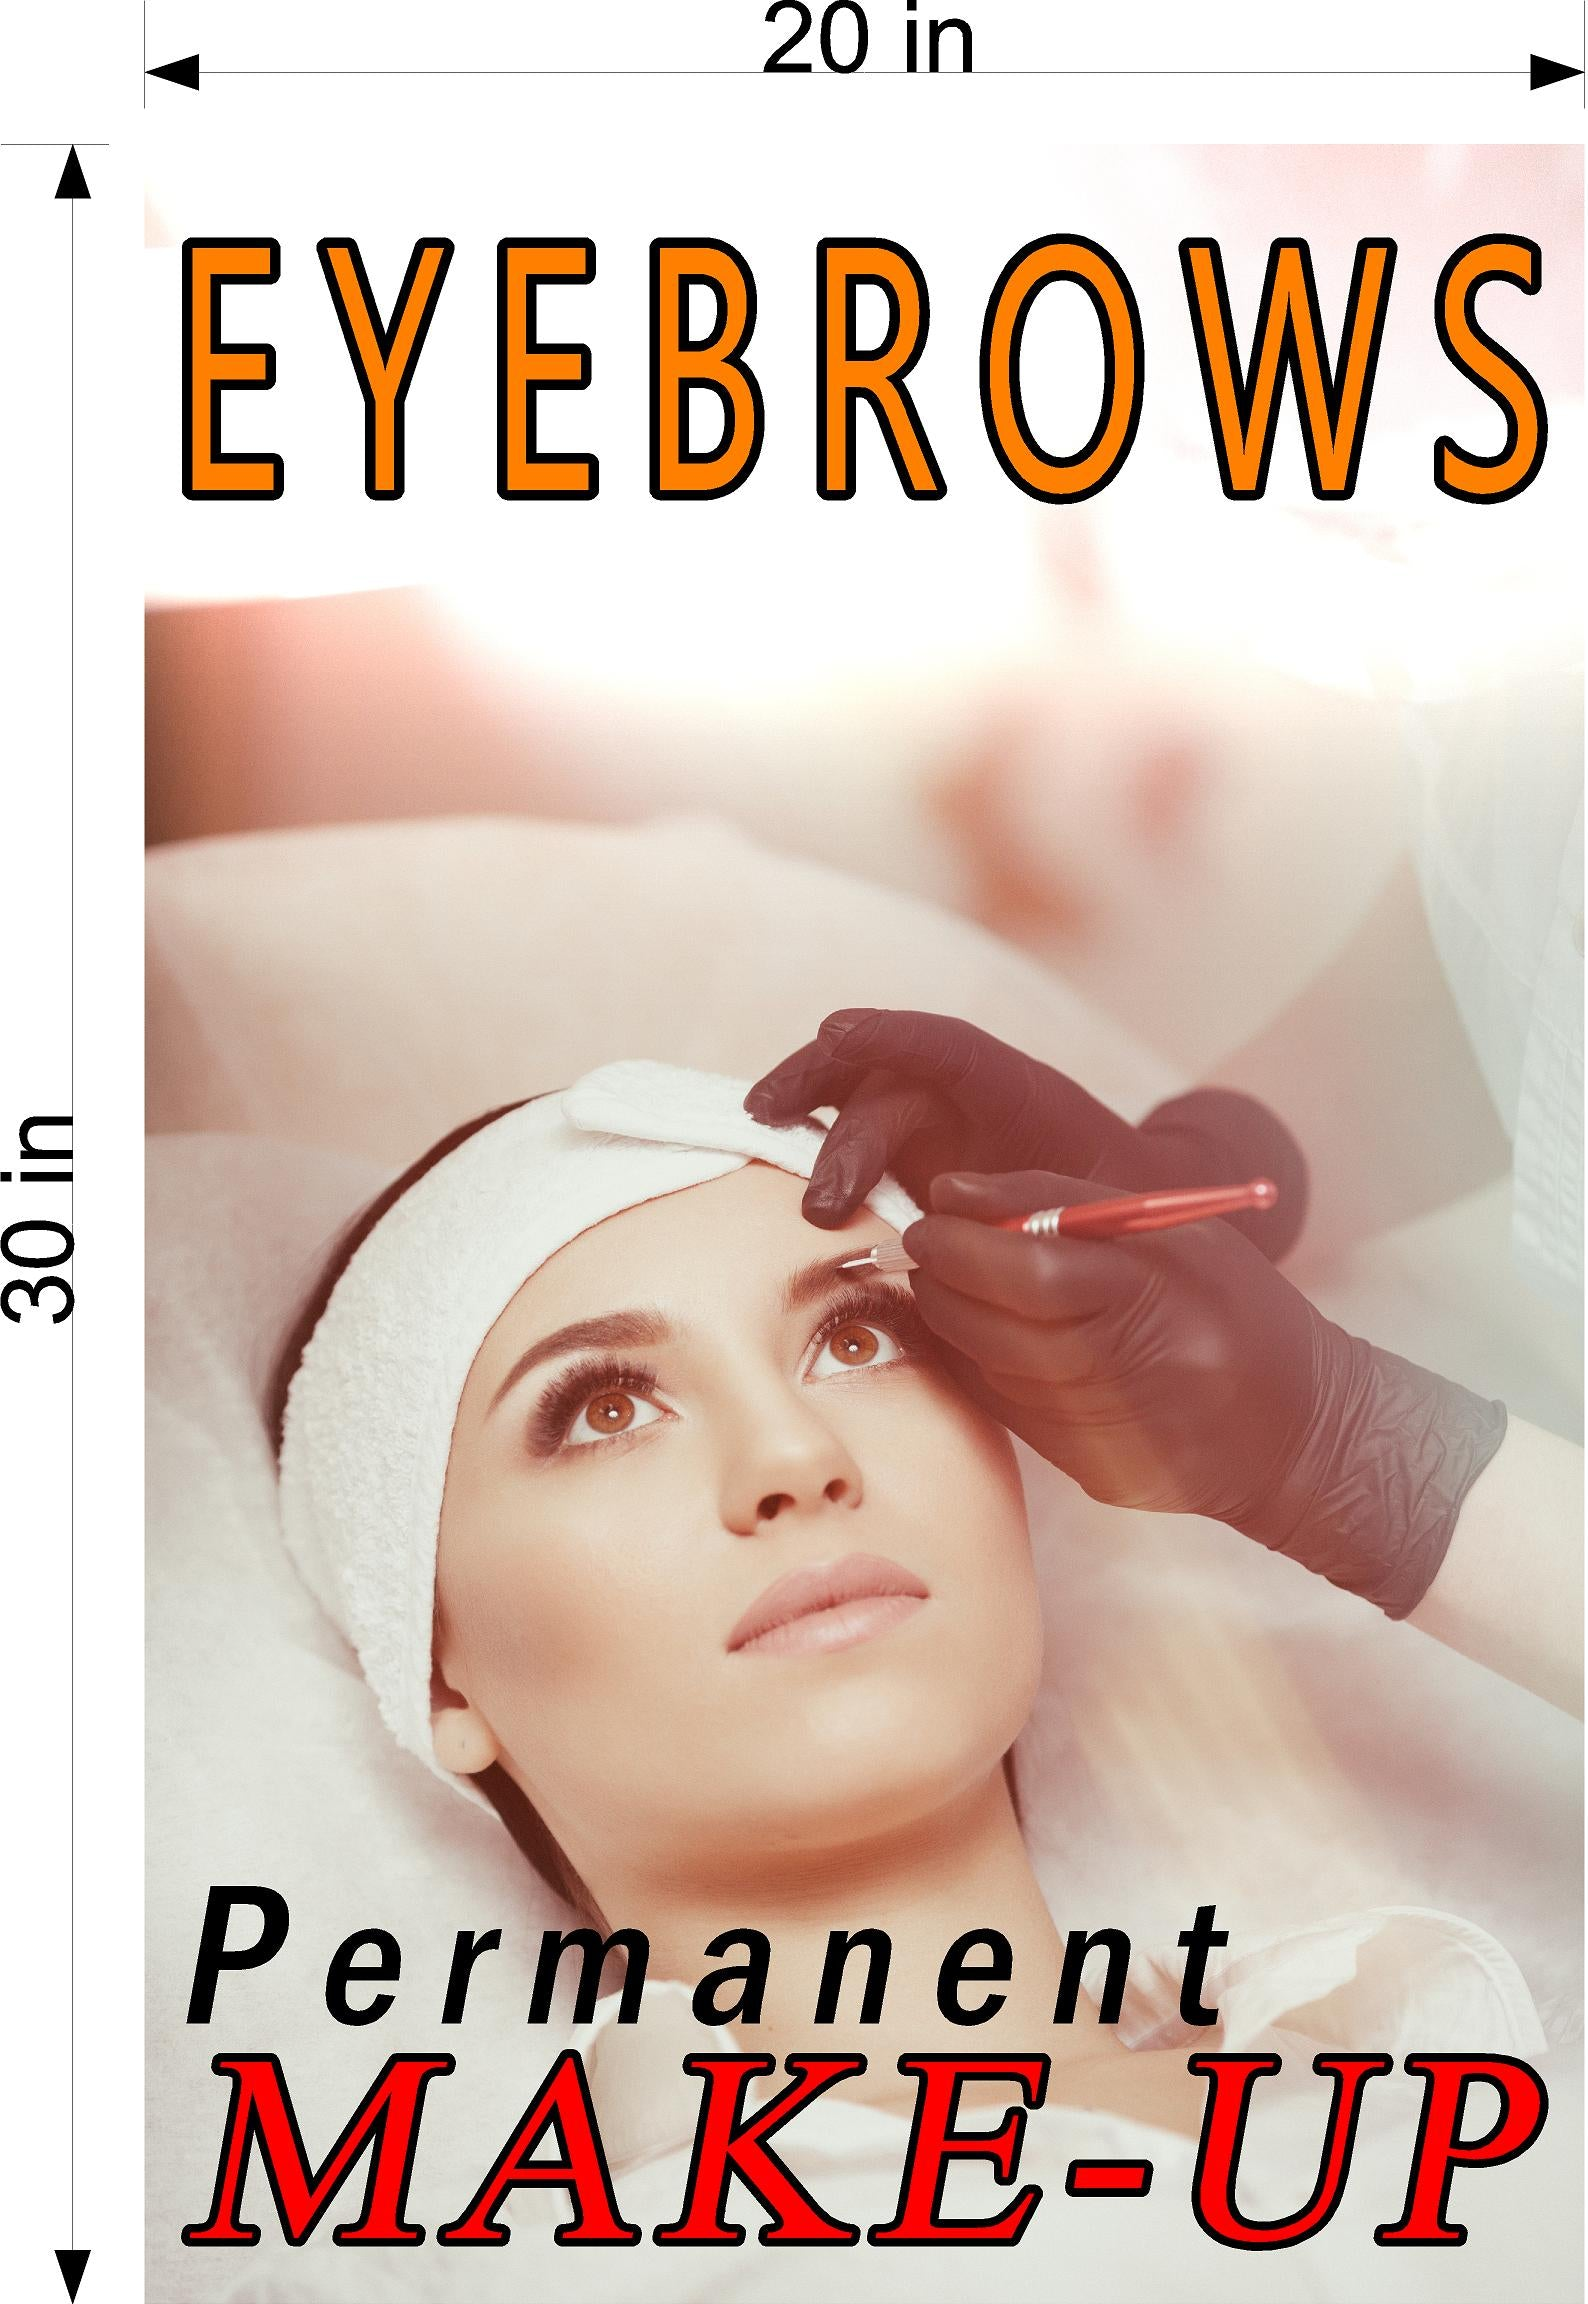 Eyebrows 11 Perforated Mesh One Way Vision See-Through Window Vinyl Salon Sign Permanent Make-Up Vertical